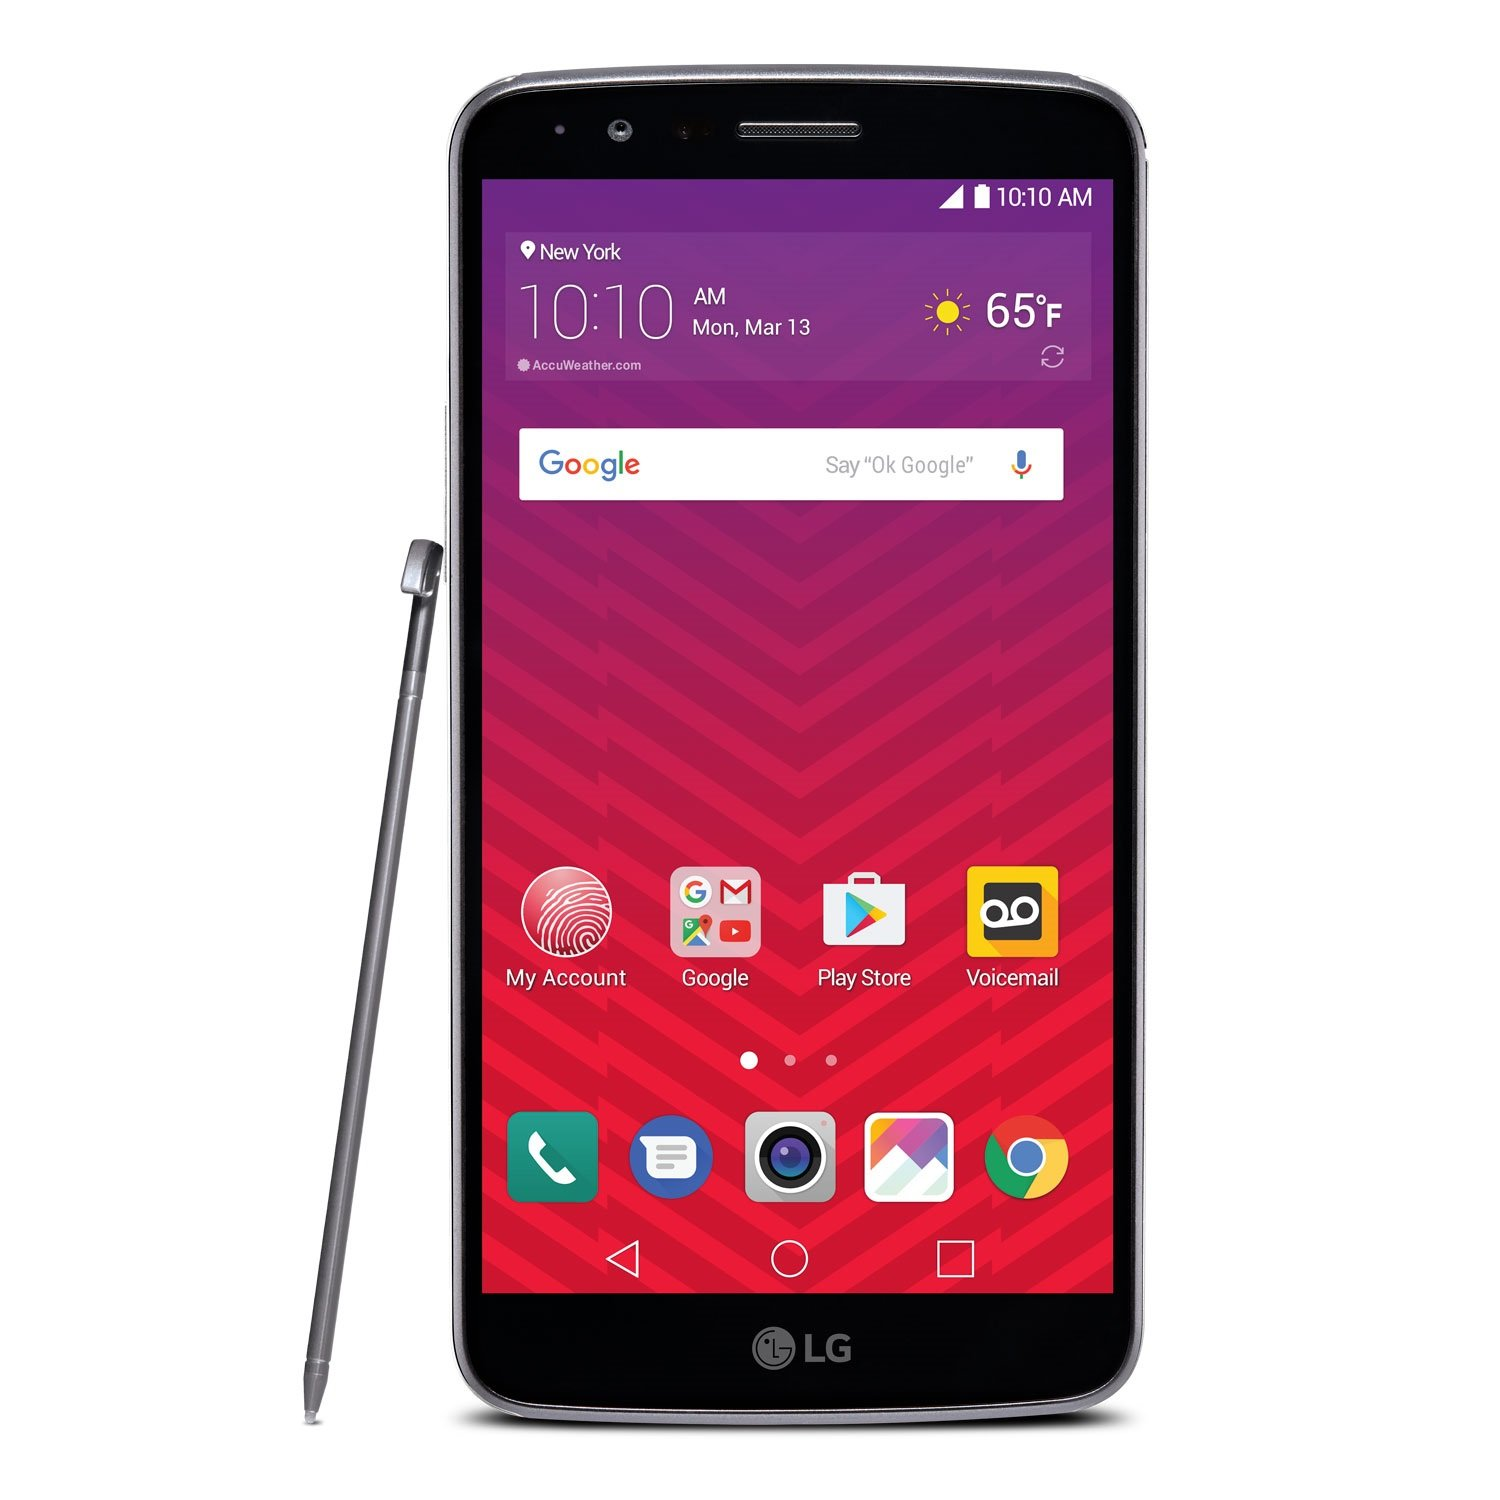 LG (LGLS777ABB) Stylo 3 - Prepaid - Carrier Locked - Boost Mobile